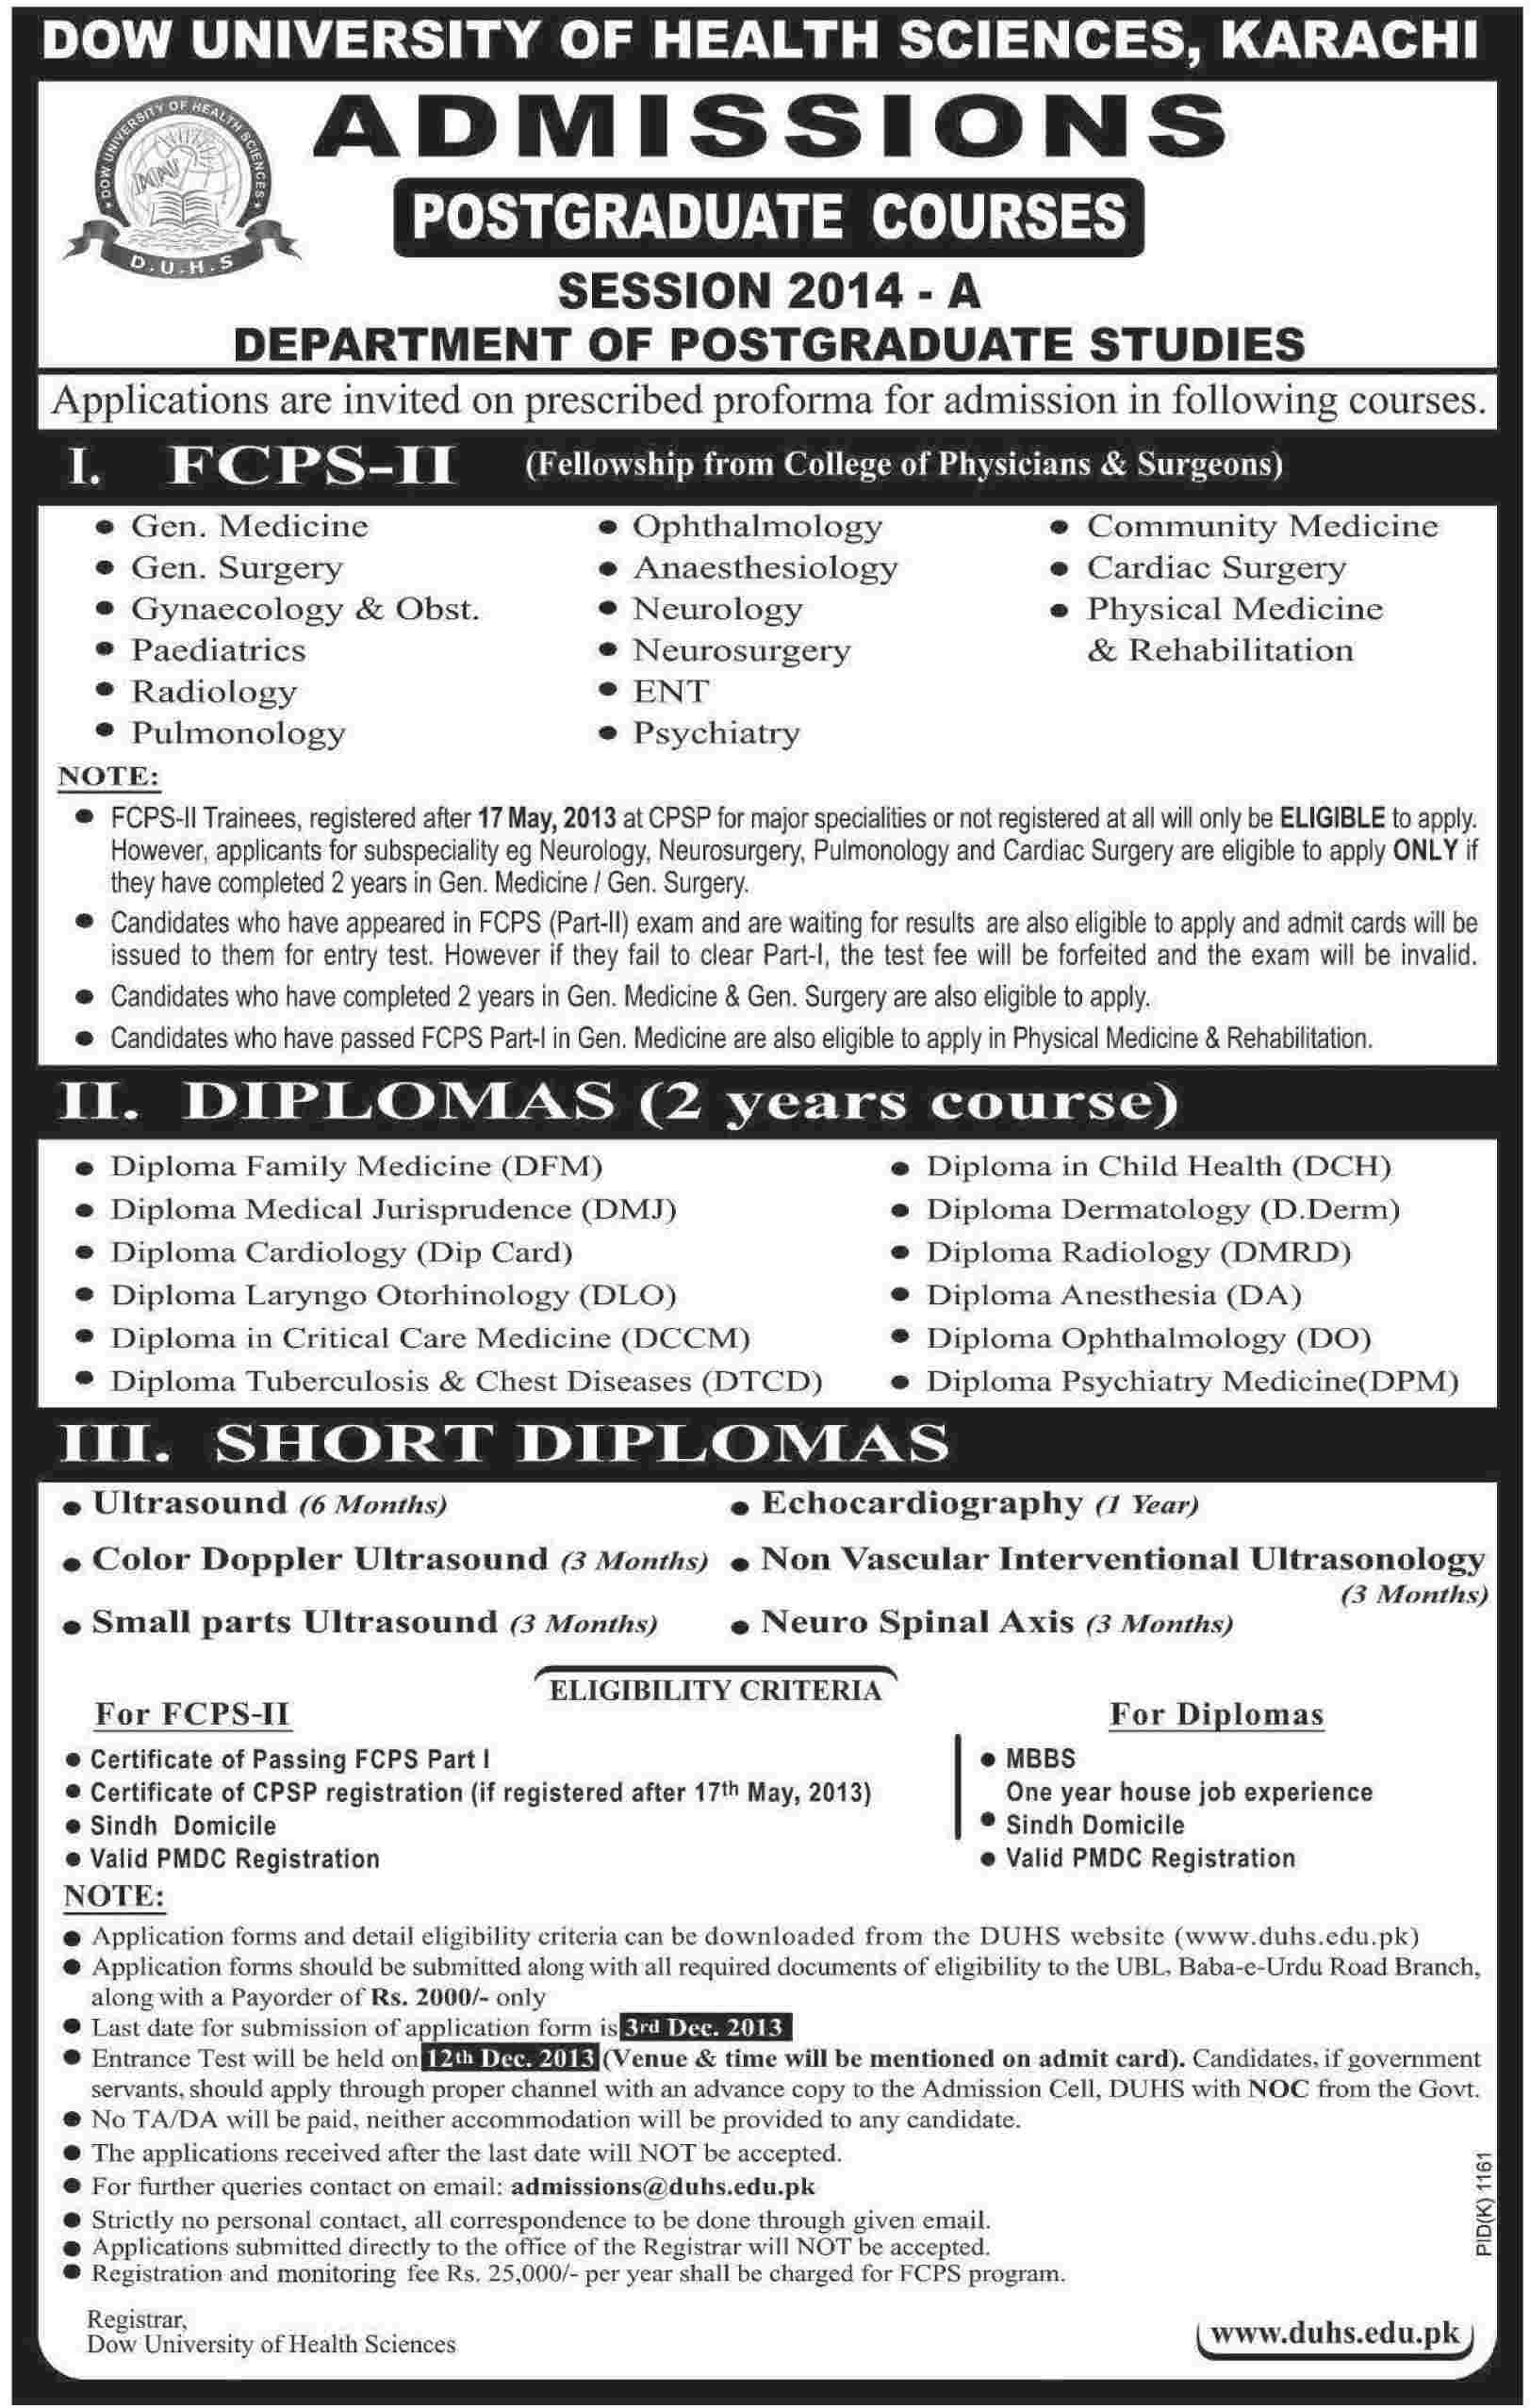 Dow University of Health Sciences (DUHS) Karachi Admission Notice 2013 for For FCPS-II , Diploma & Short Diploma Courses